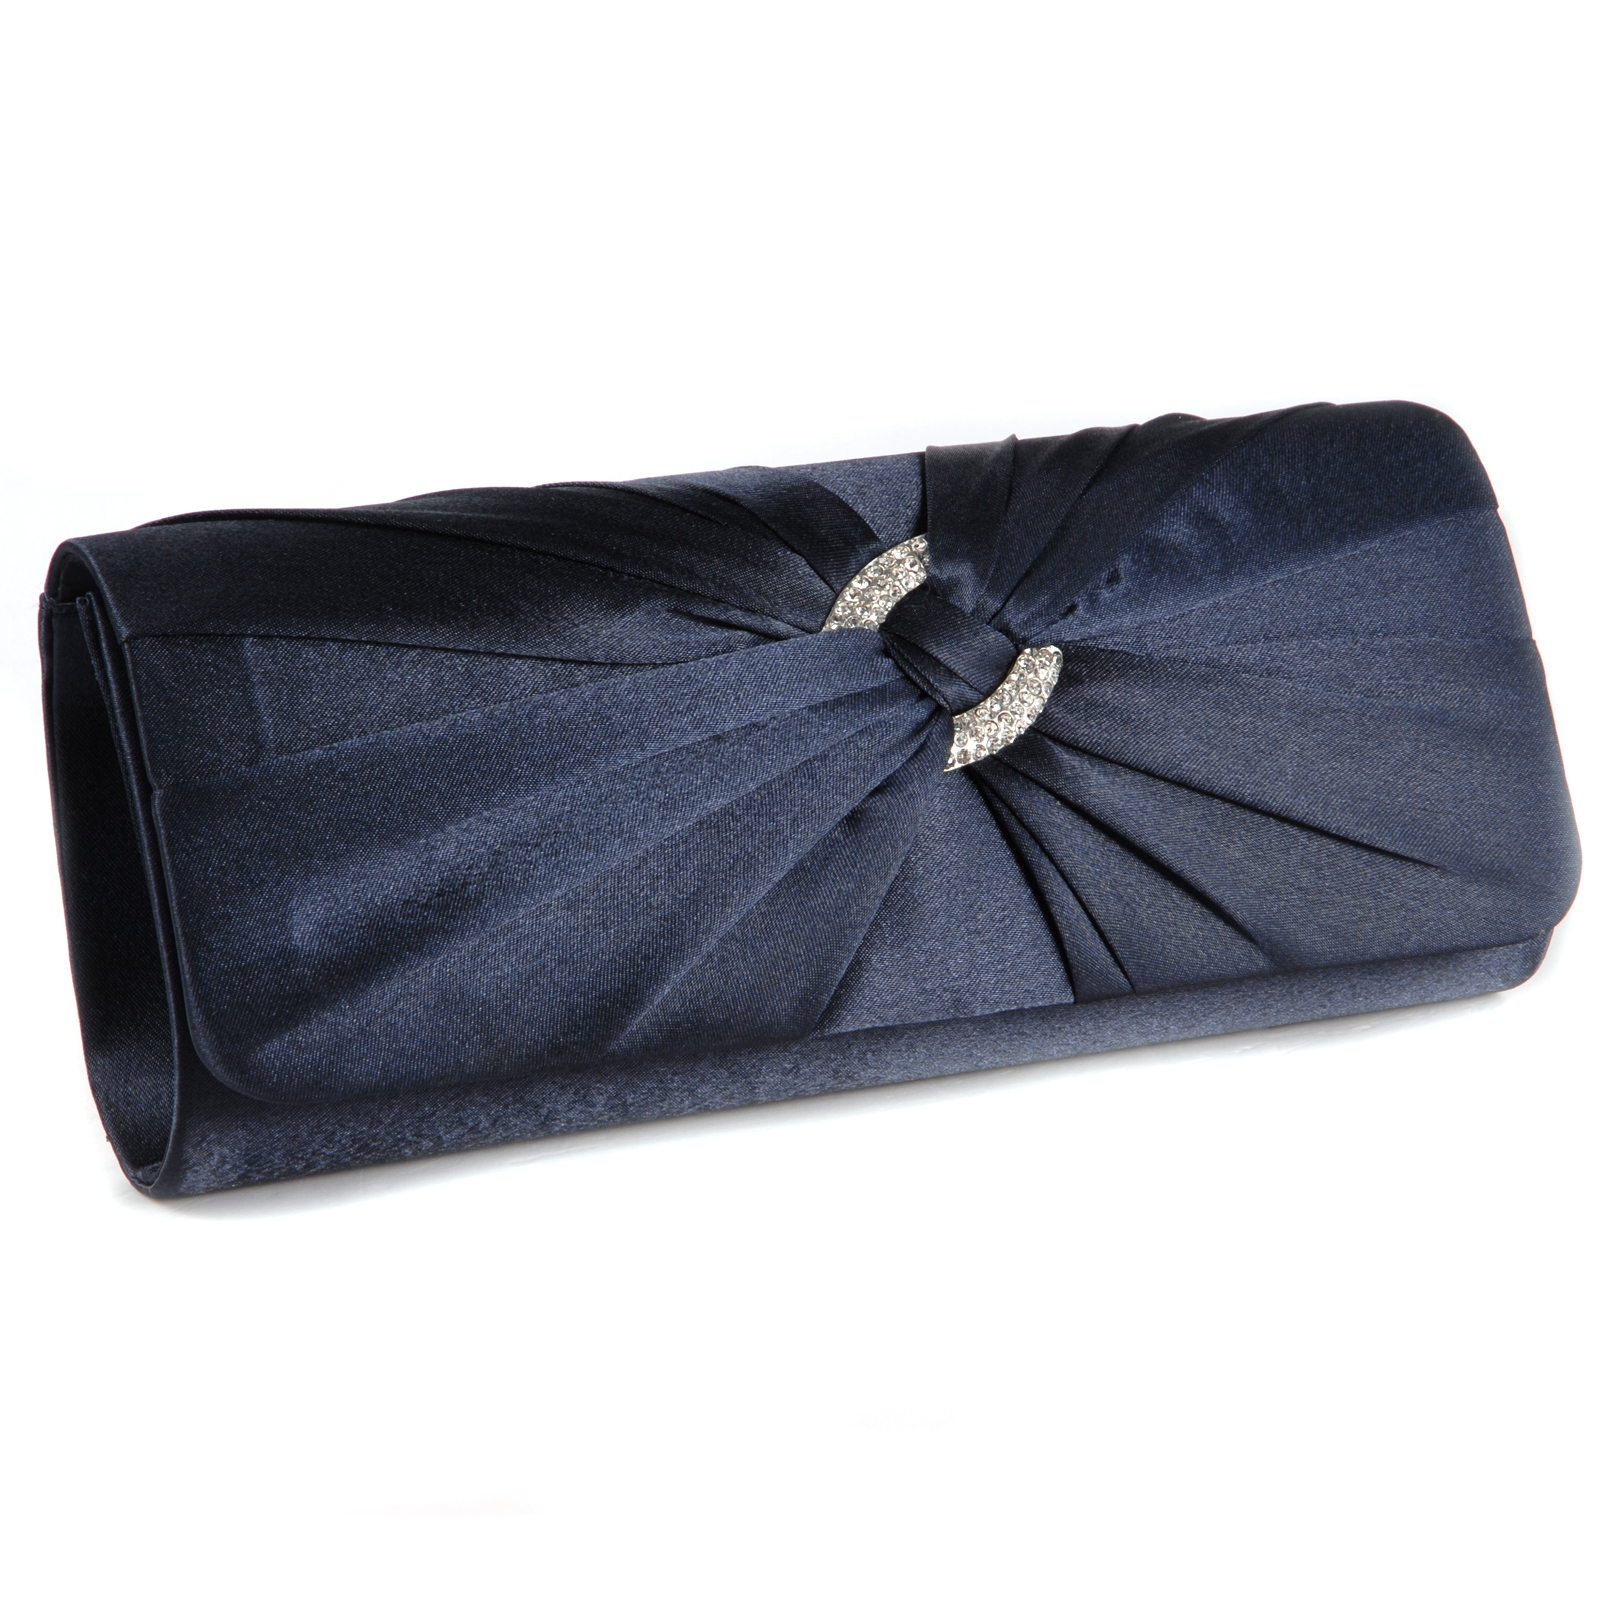 Find great deals on eBay for navy blue clutch bags. Shop with confidence.